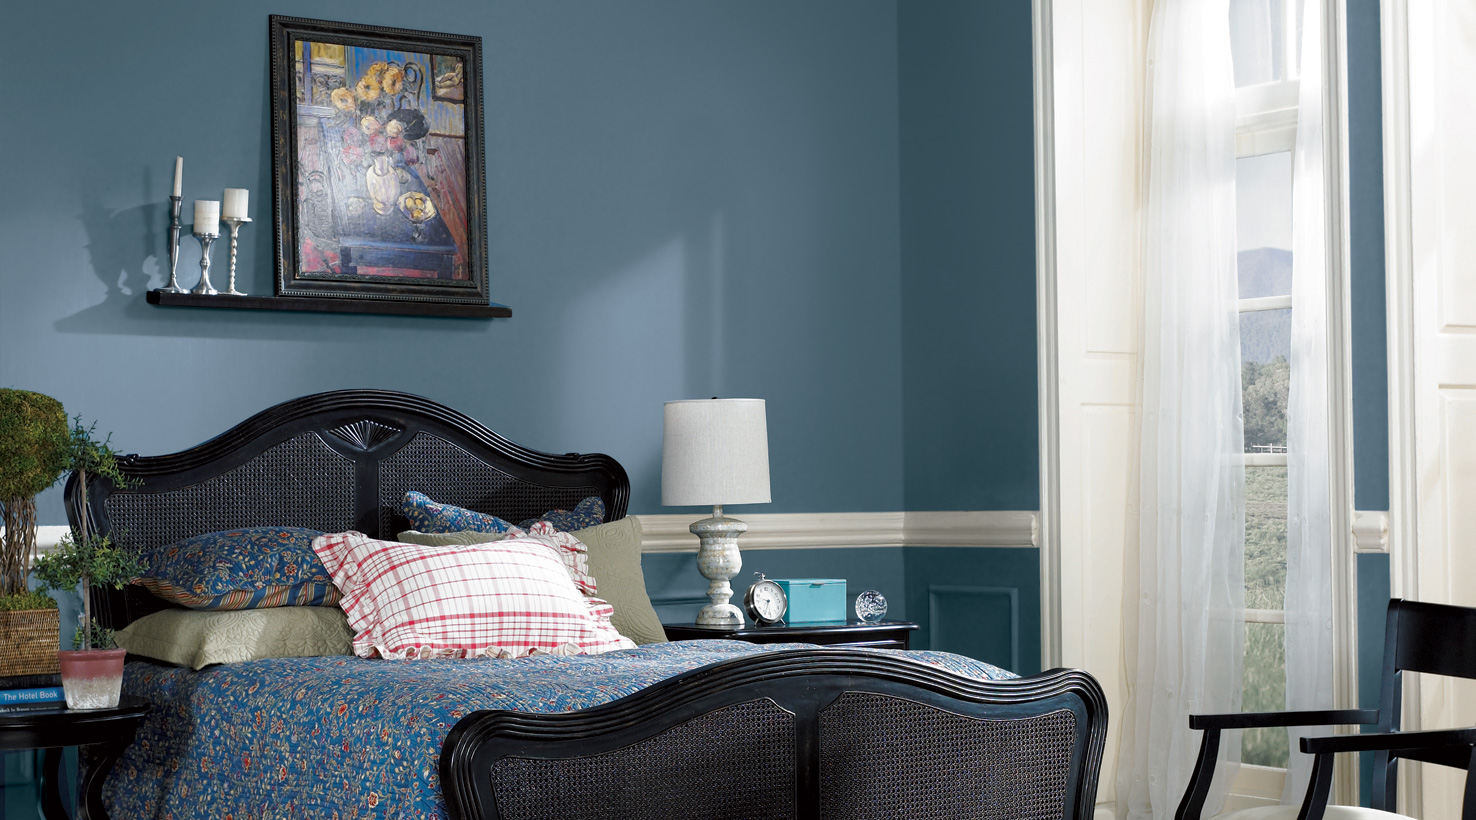 Bedroom color inspiration gallery sherwin williams - Bedroom wall paint colors ...